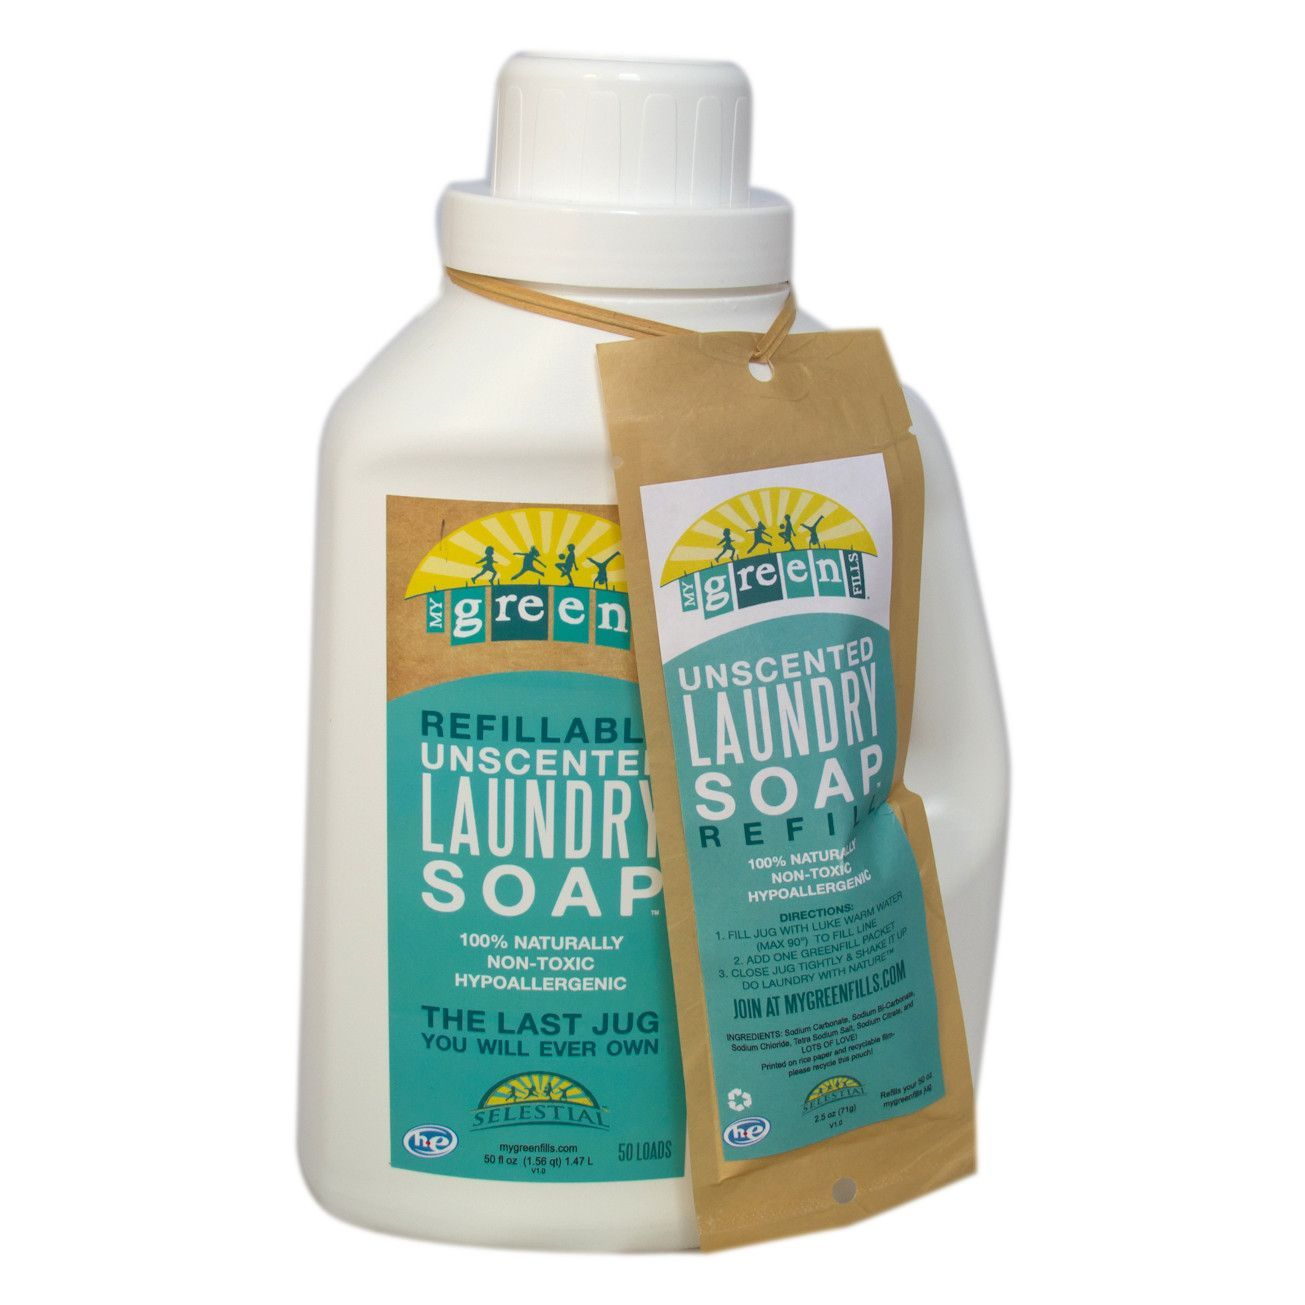 Refillable Laundry Soap Combo Pack Natural Laundry Detergent